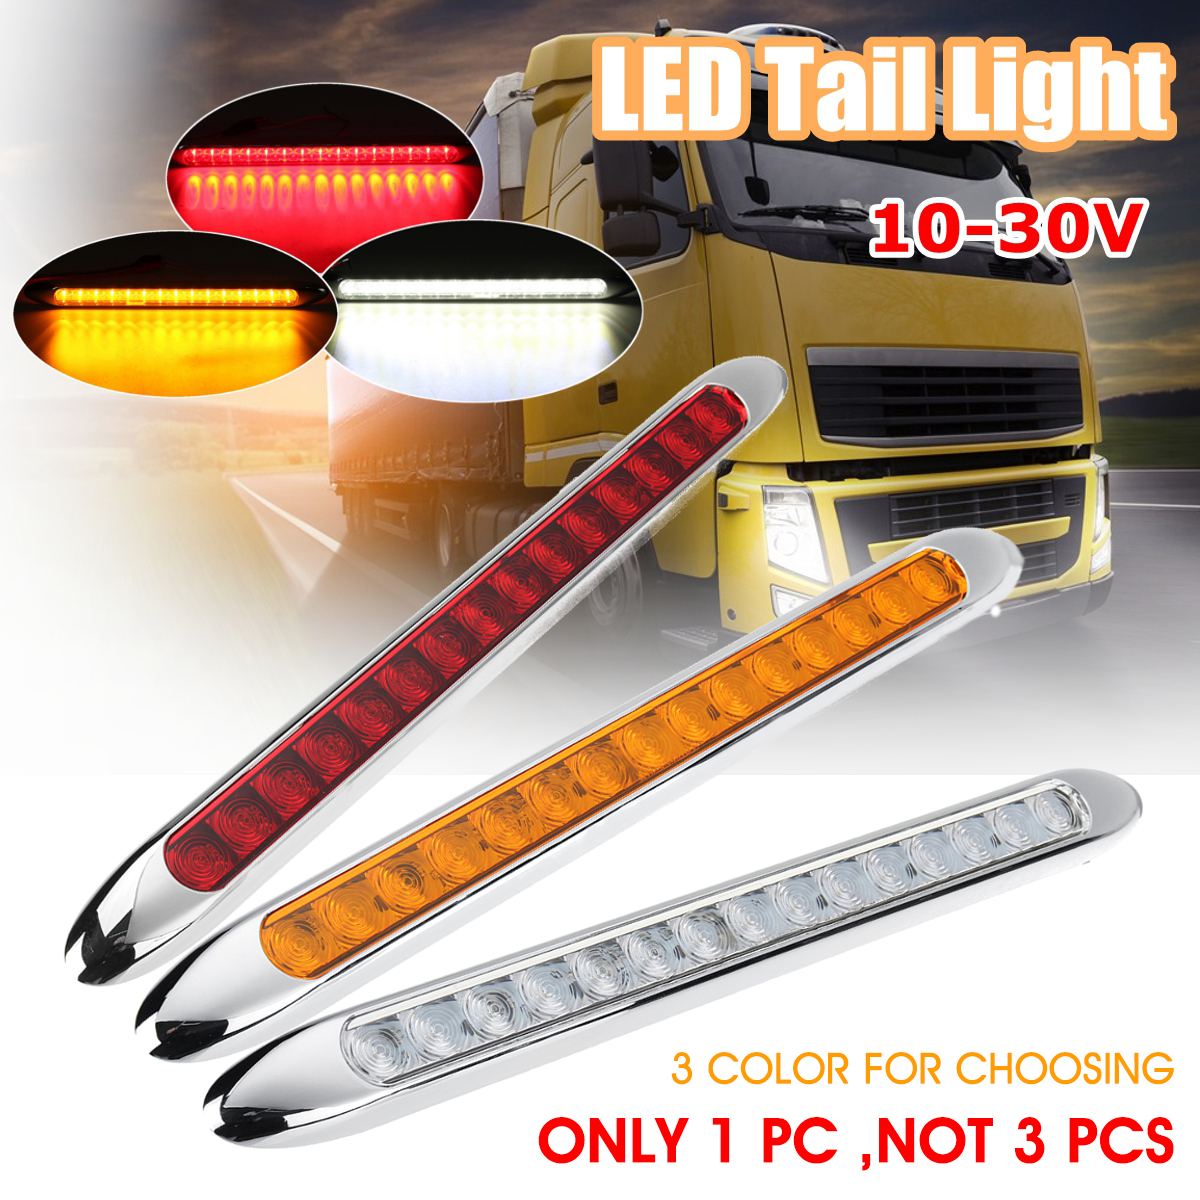 10-30V 15LED Ultra-slim Car Trailer Truck Caravan Tail Light Rear Stop Reverse Turn Signal Indicator Lamp Side Marker vehemo 12v 40 led truck car trailer rear tail light stop indicator turn signal lamp